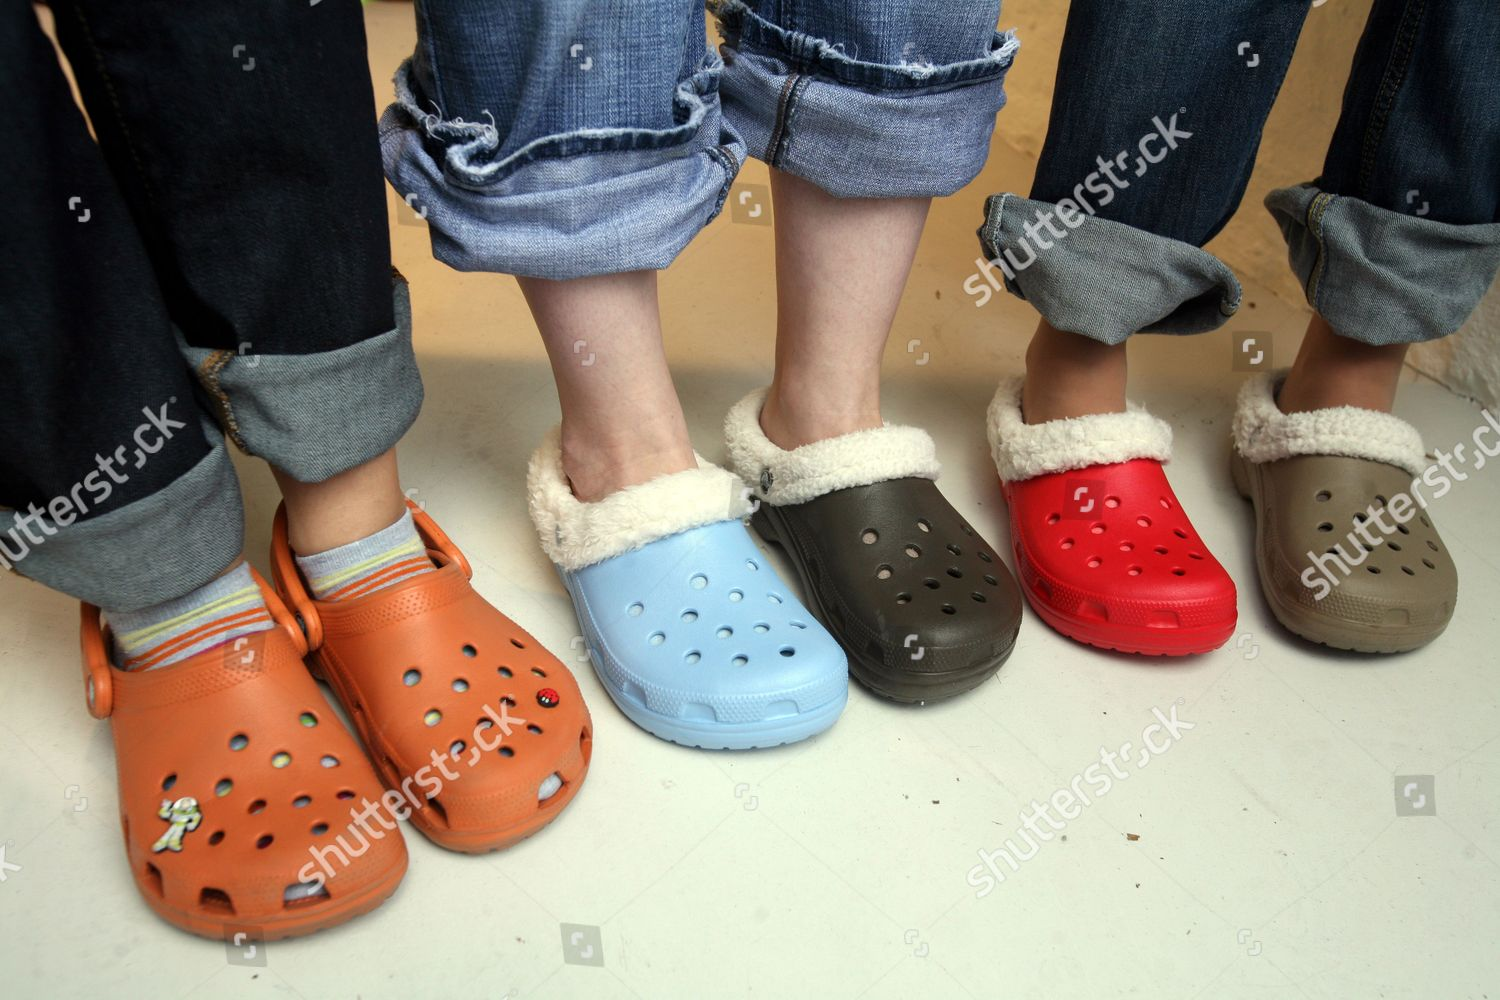 a35f7aeef Some Crocs store Editorial Stock Photo - Stock Image